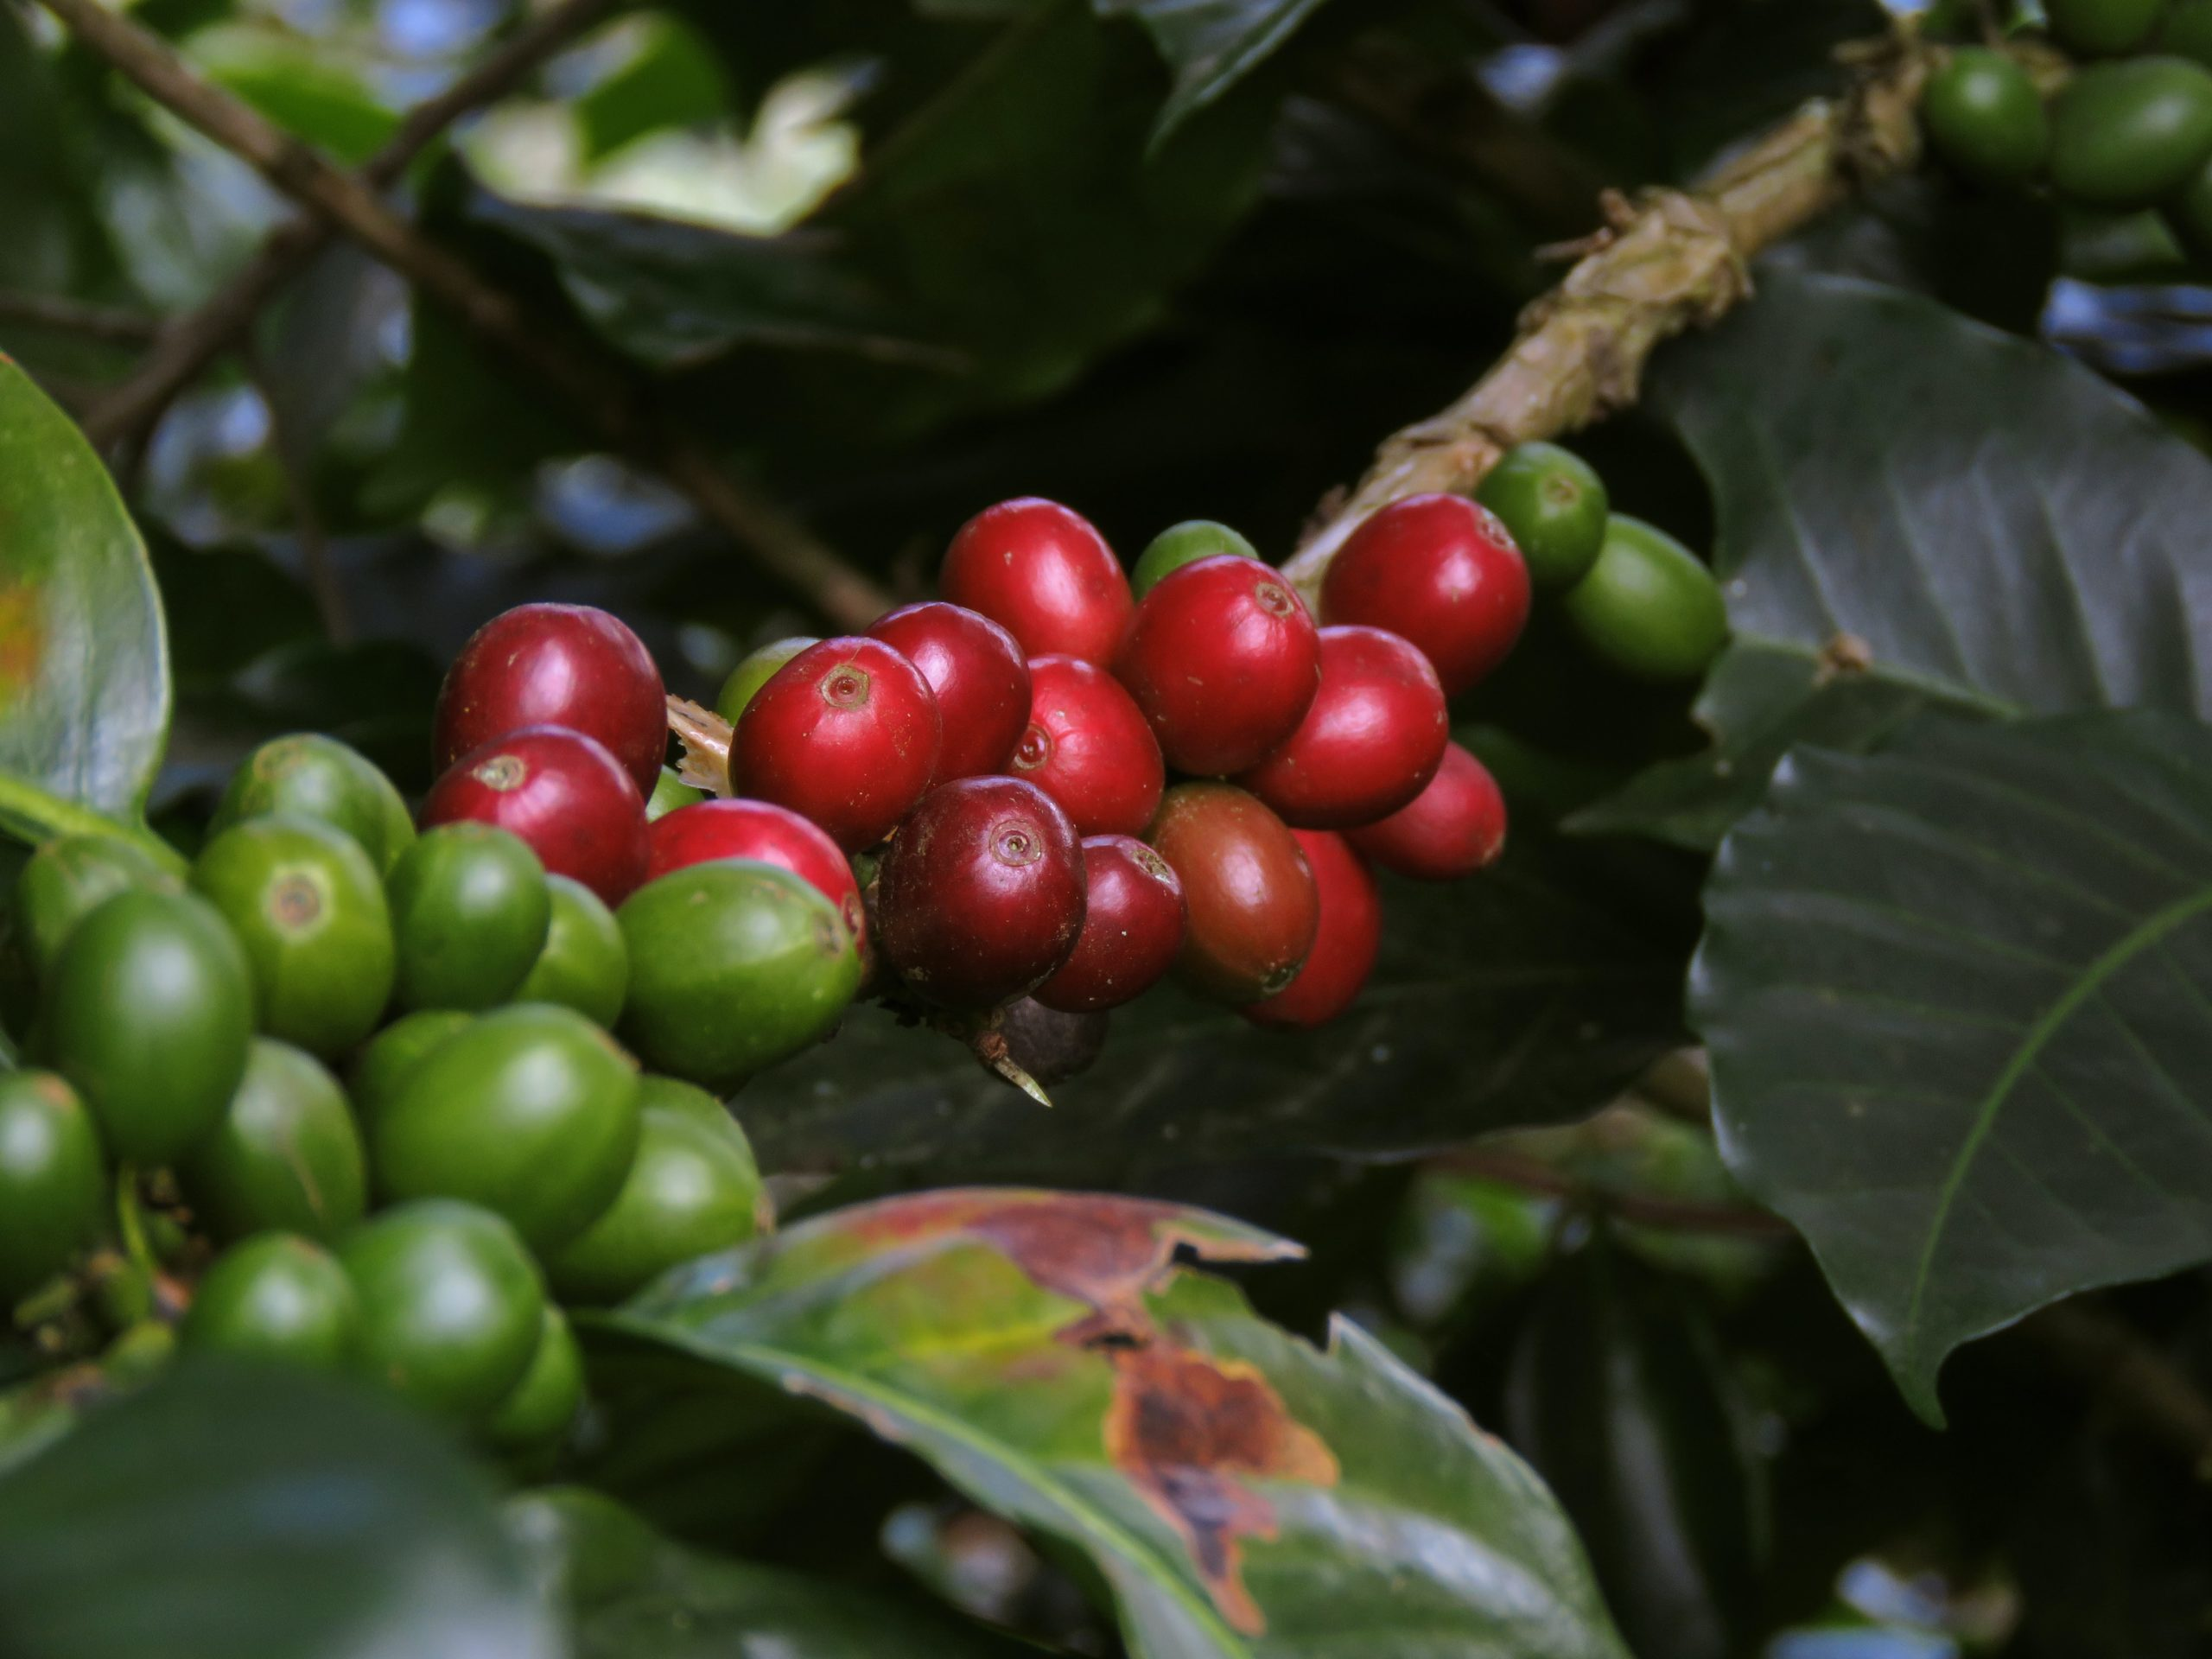 coffee cherries on a plant